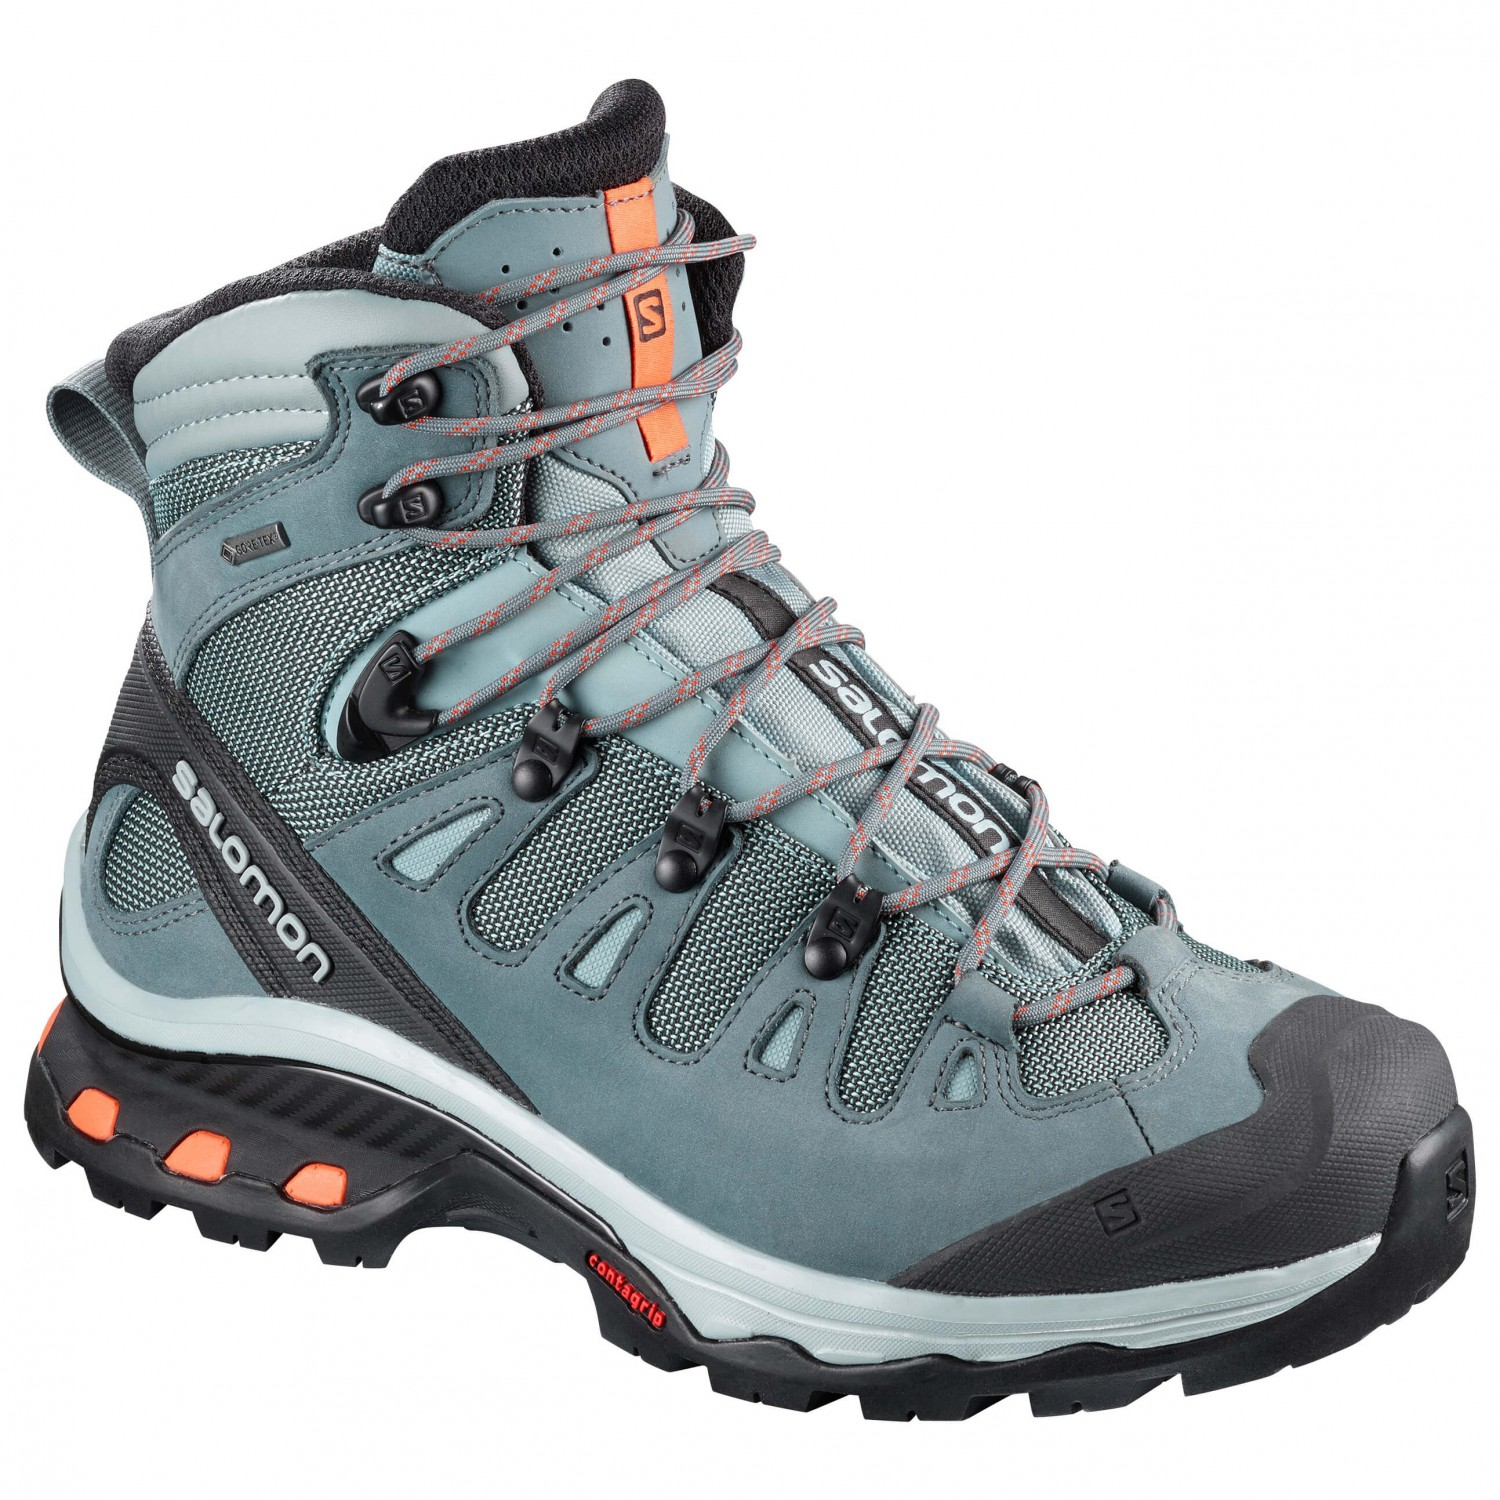 uk Gtx Chaussures Salomon De Red Women's Tibetan Quest 4d Randonnée 3 4 Teak wFBOq7